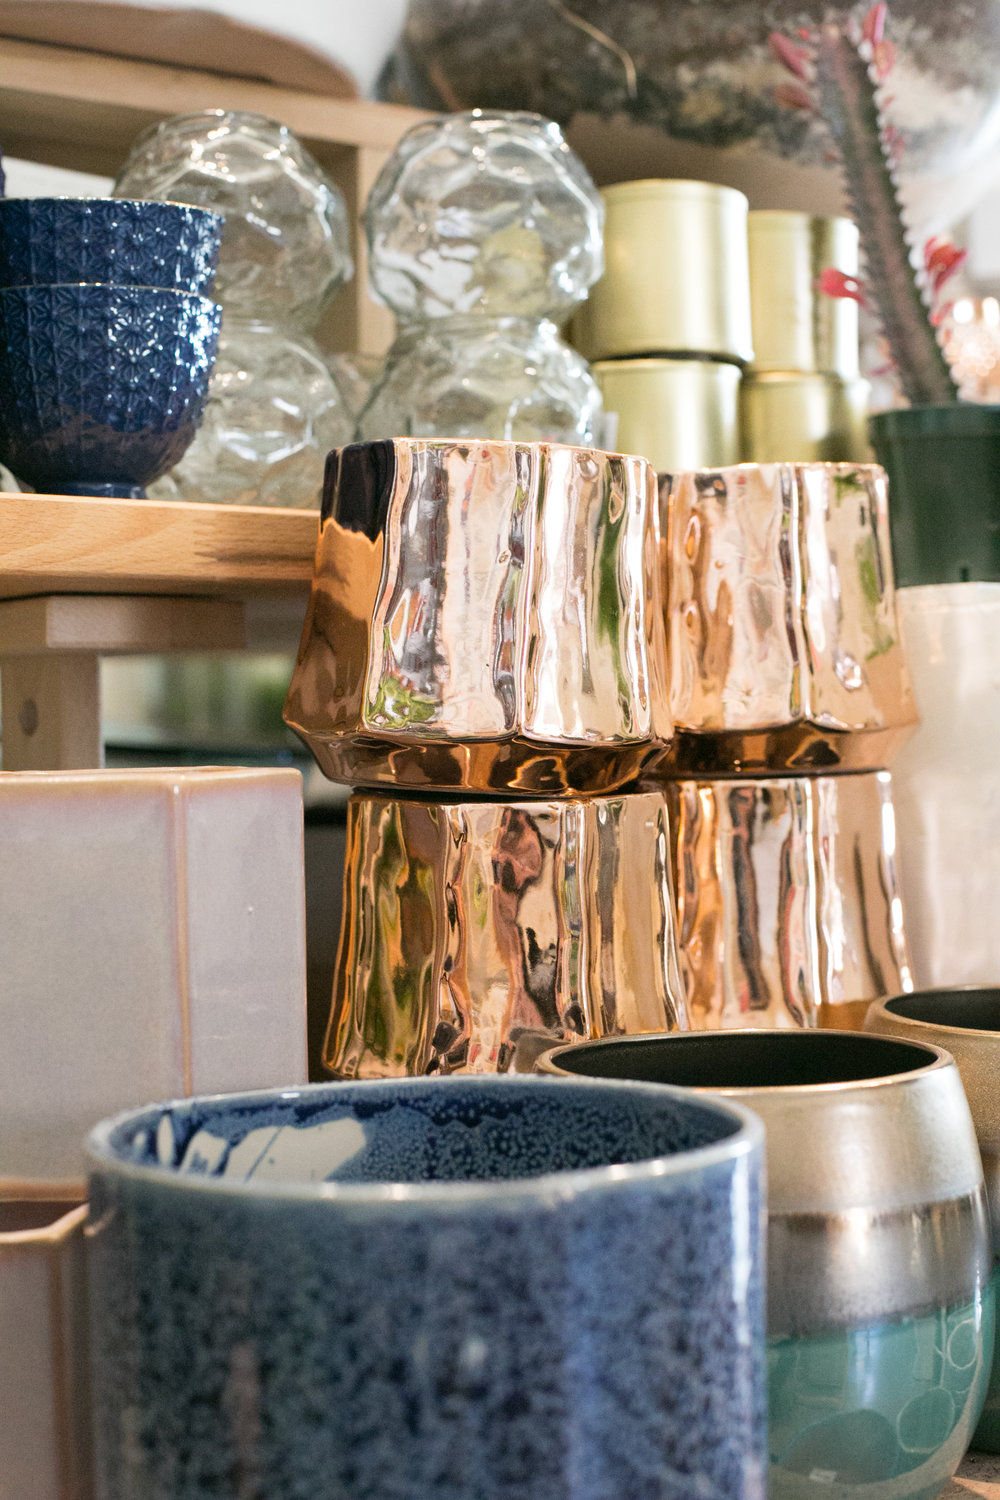 We offer a wide selection of planters, from small and sparkly to big and funky.